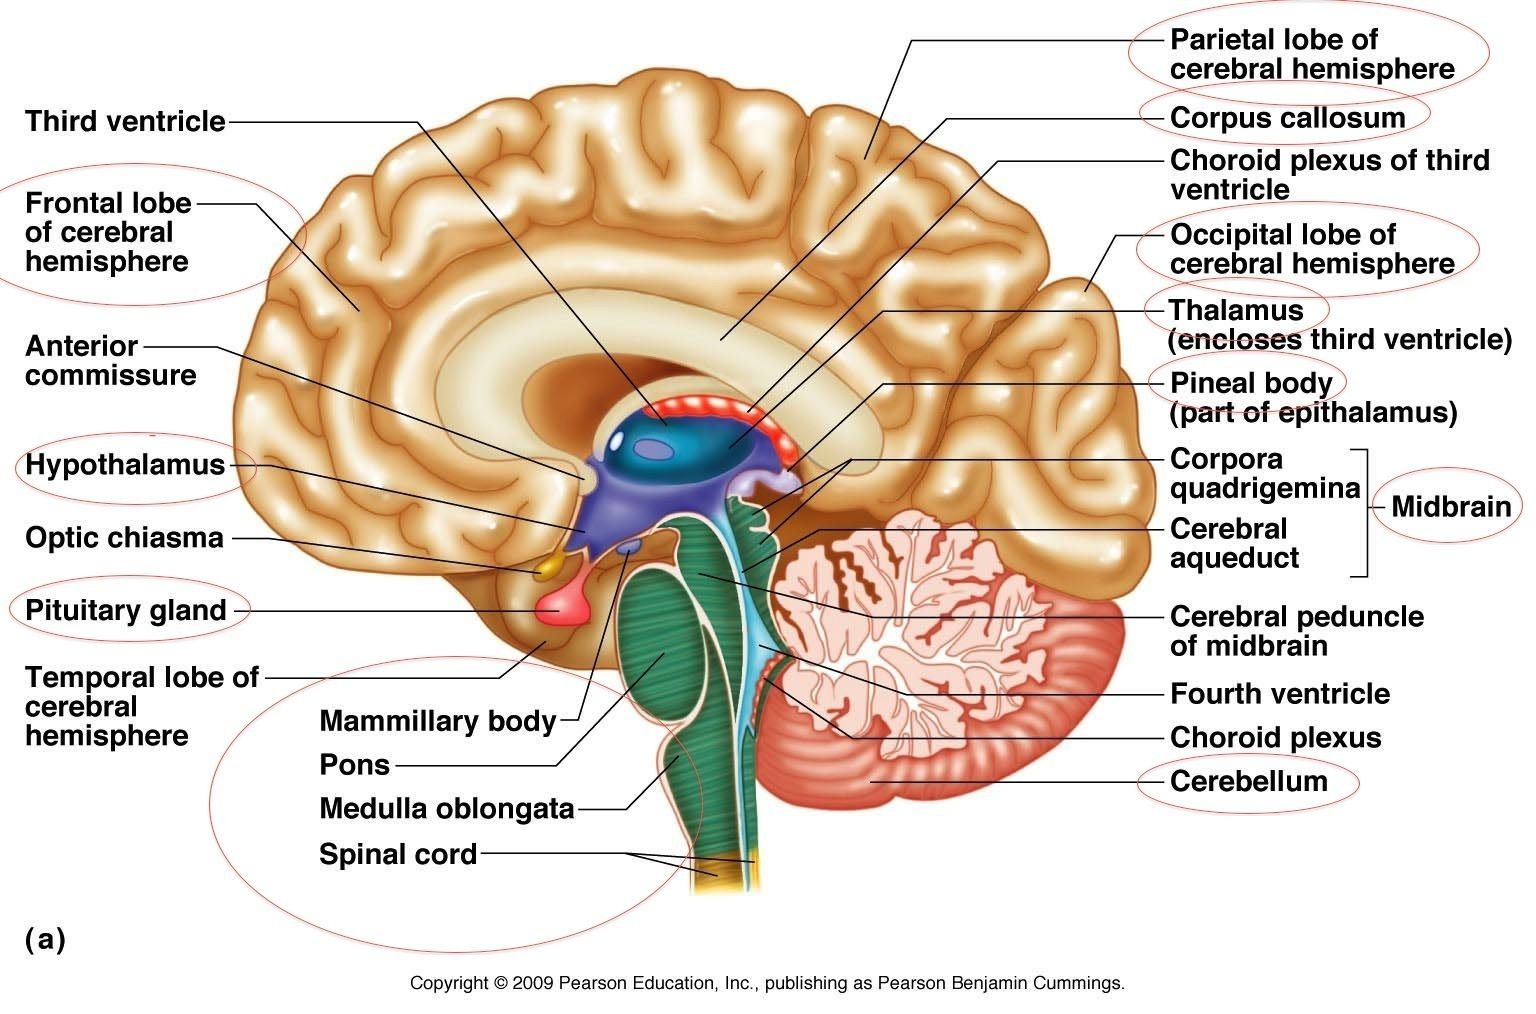 structure of the brain diagram nervous system diagram labeled diagram images [ 1536 x 1014 Pixel ]